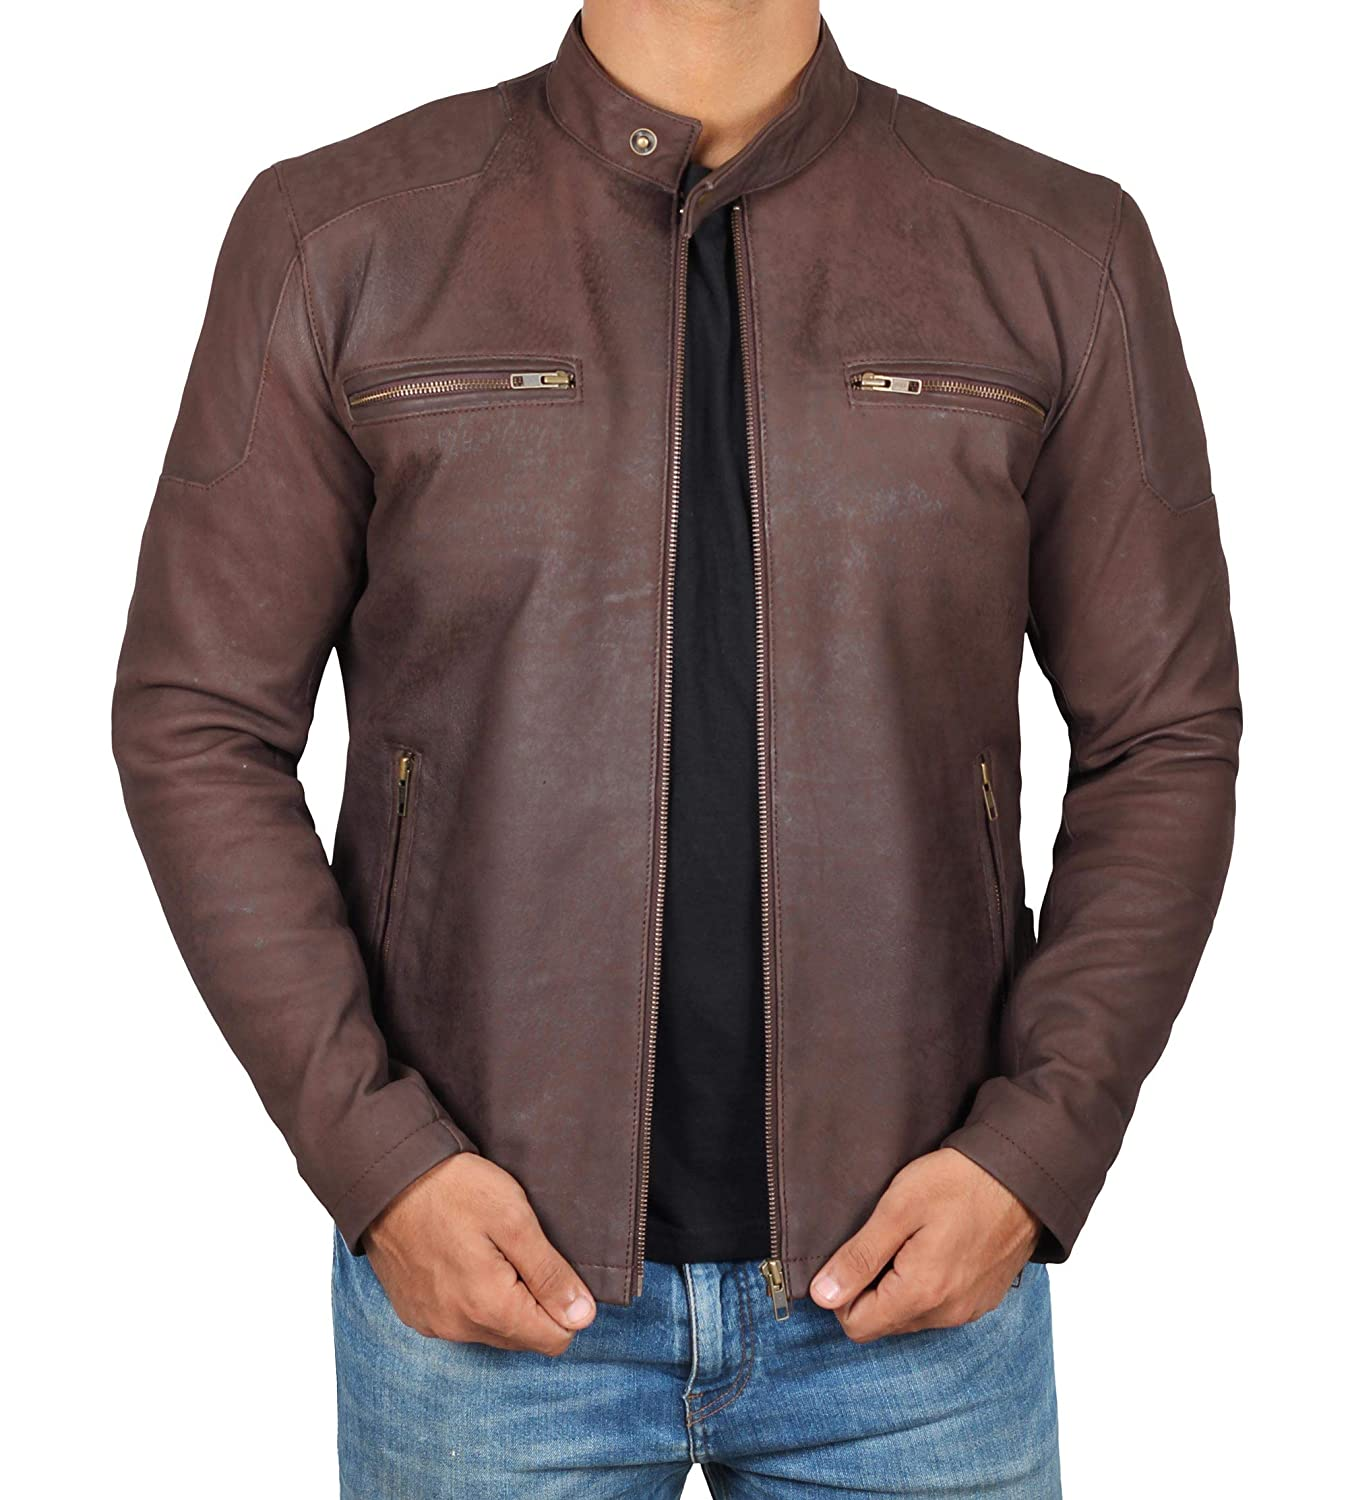 Decrum Super Natural Distressed Leather Jackets Men - Brown Leather Jacket Men